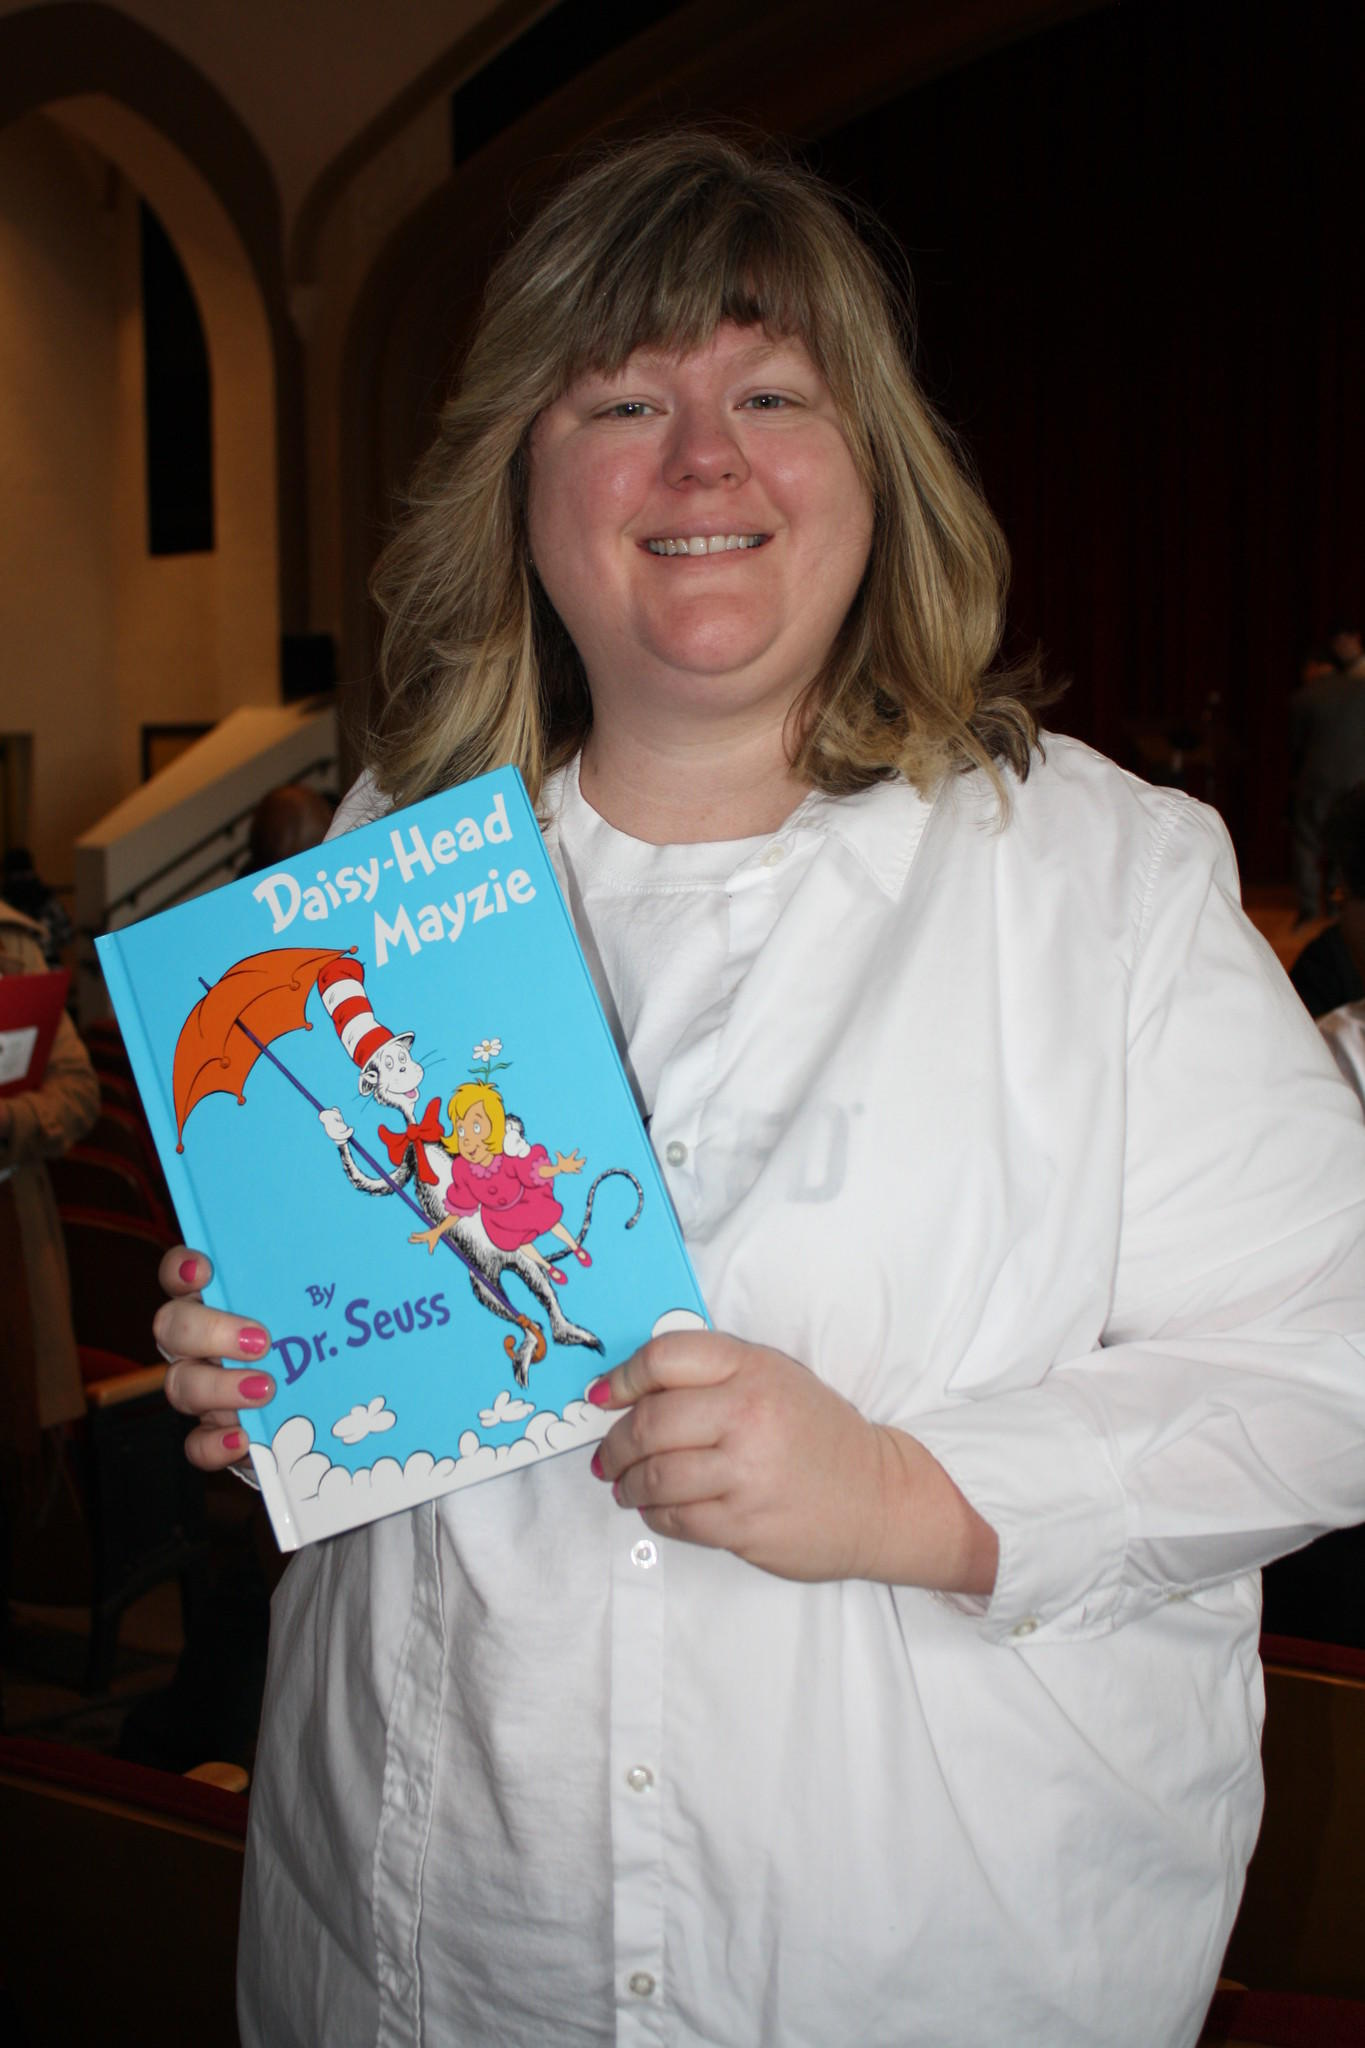 Kathy McDonald, employee at United Technologies Corporation volunteering for United Technologies Research Center on Read Across America Day. She read Daisy-Head Mayzie by Dr. Seuss to a classroom of first graders at Sanchez Elementary School in Hartford.